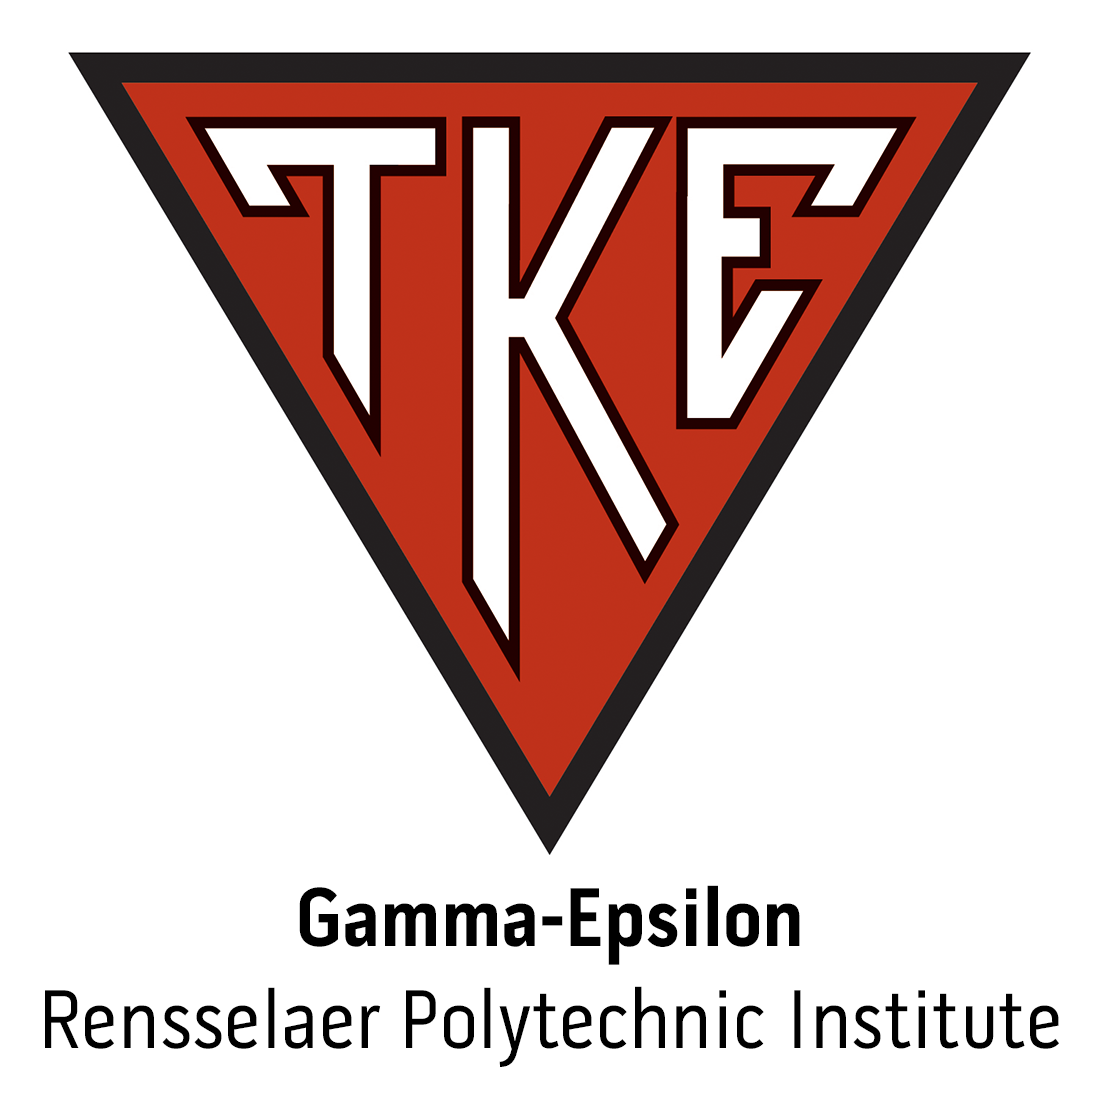 Gamma-Epsilon Colony at Rensselaer Polytechnic Institute